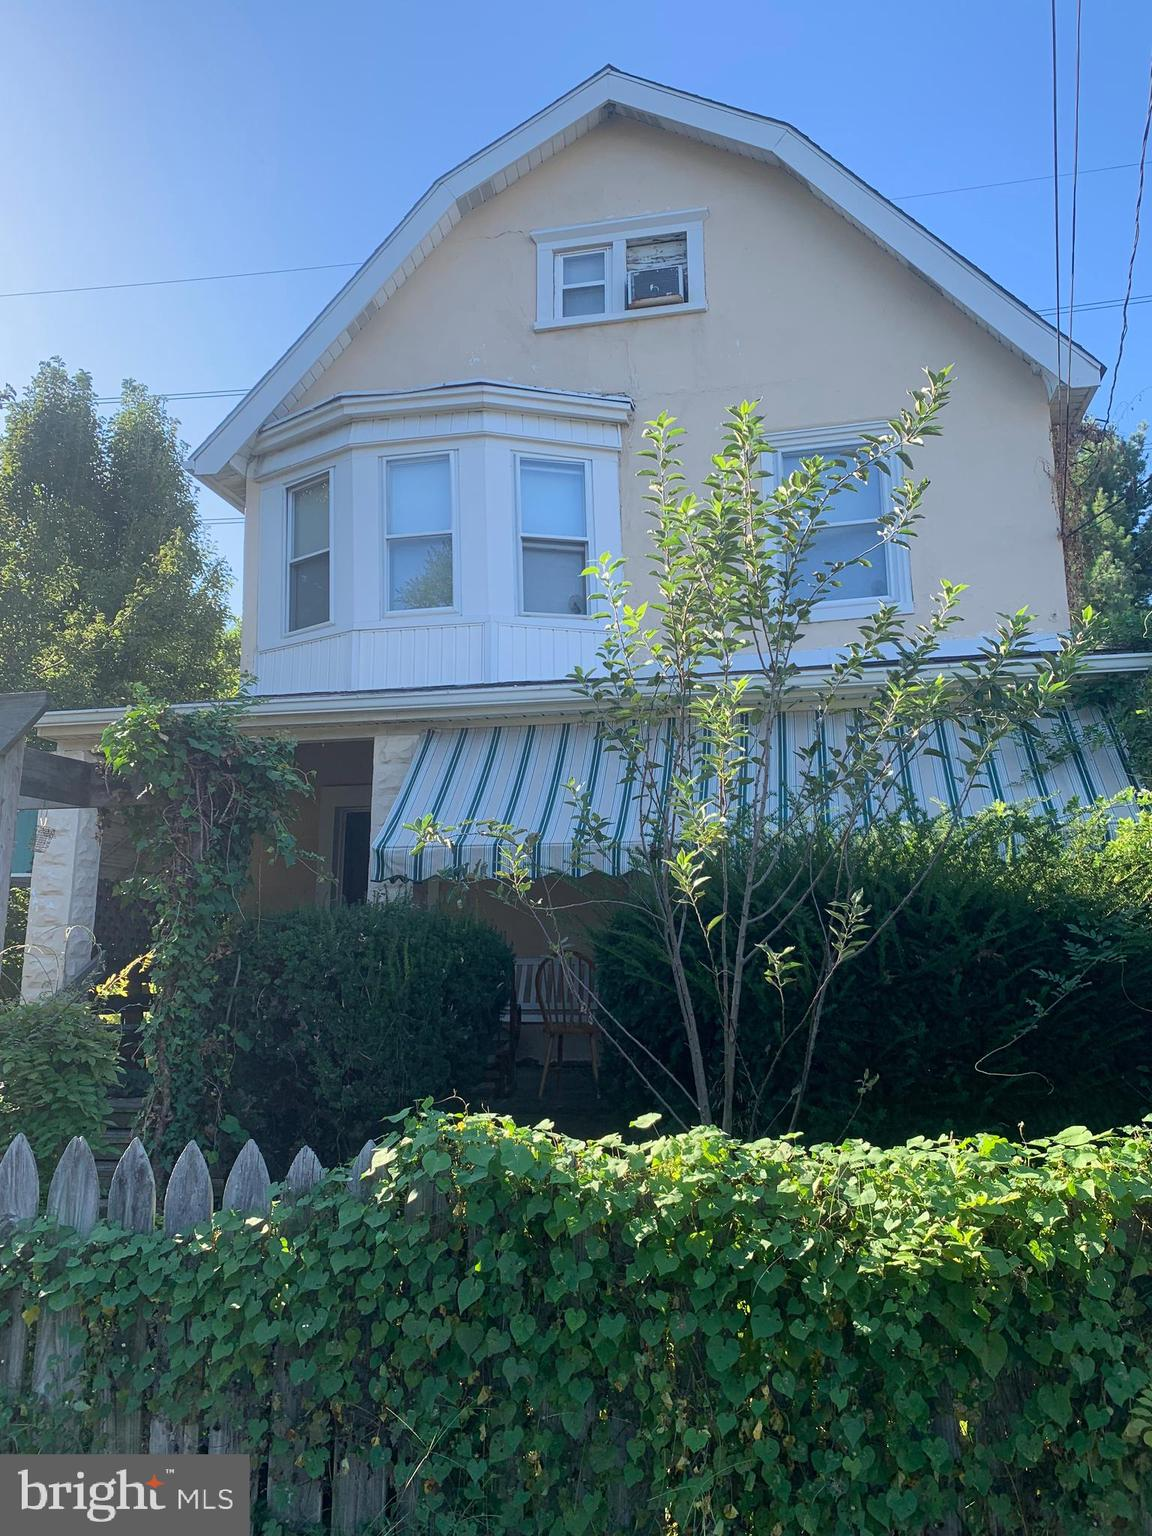 3 W RODGERS STREET, RIDLEY PARK, PA 19078